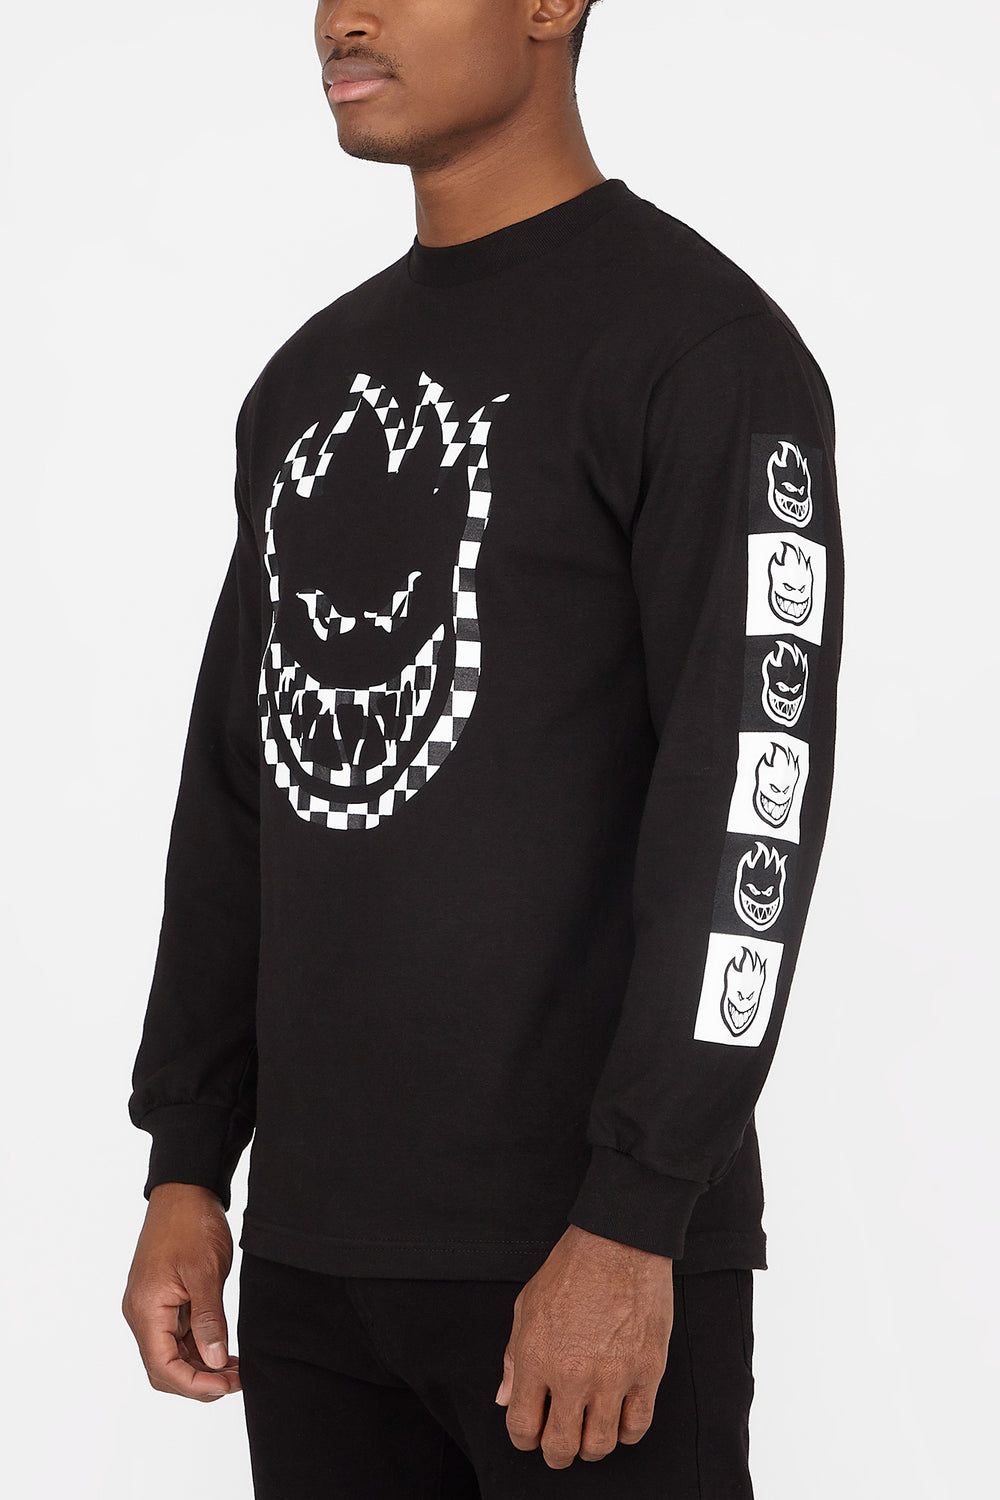 Spitfire Checkered Logo Long Sleeves Black